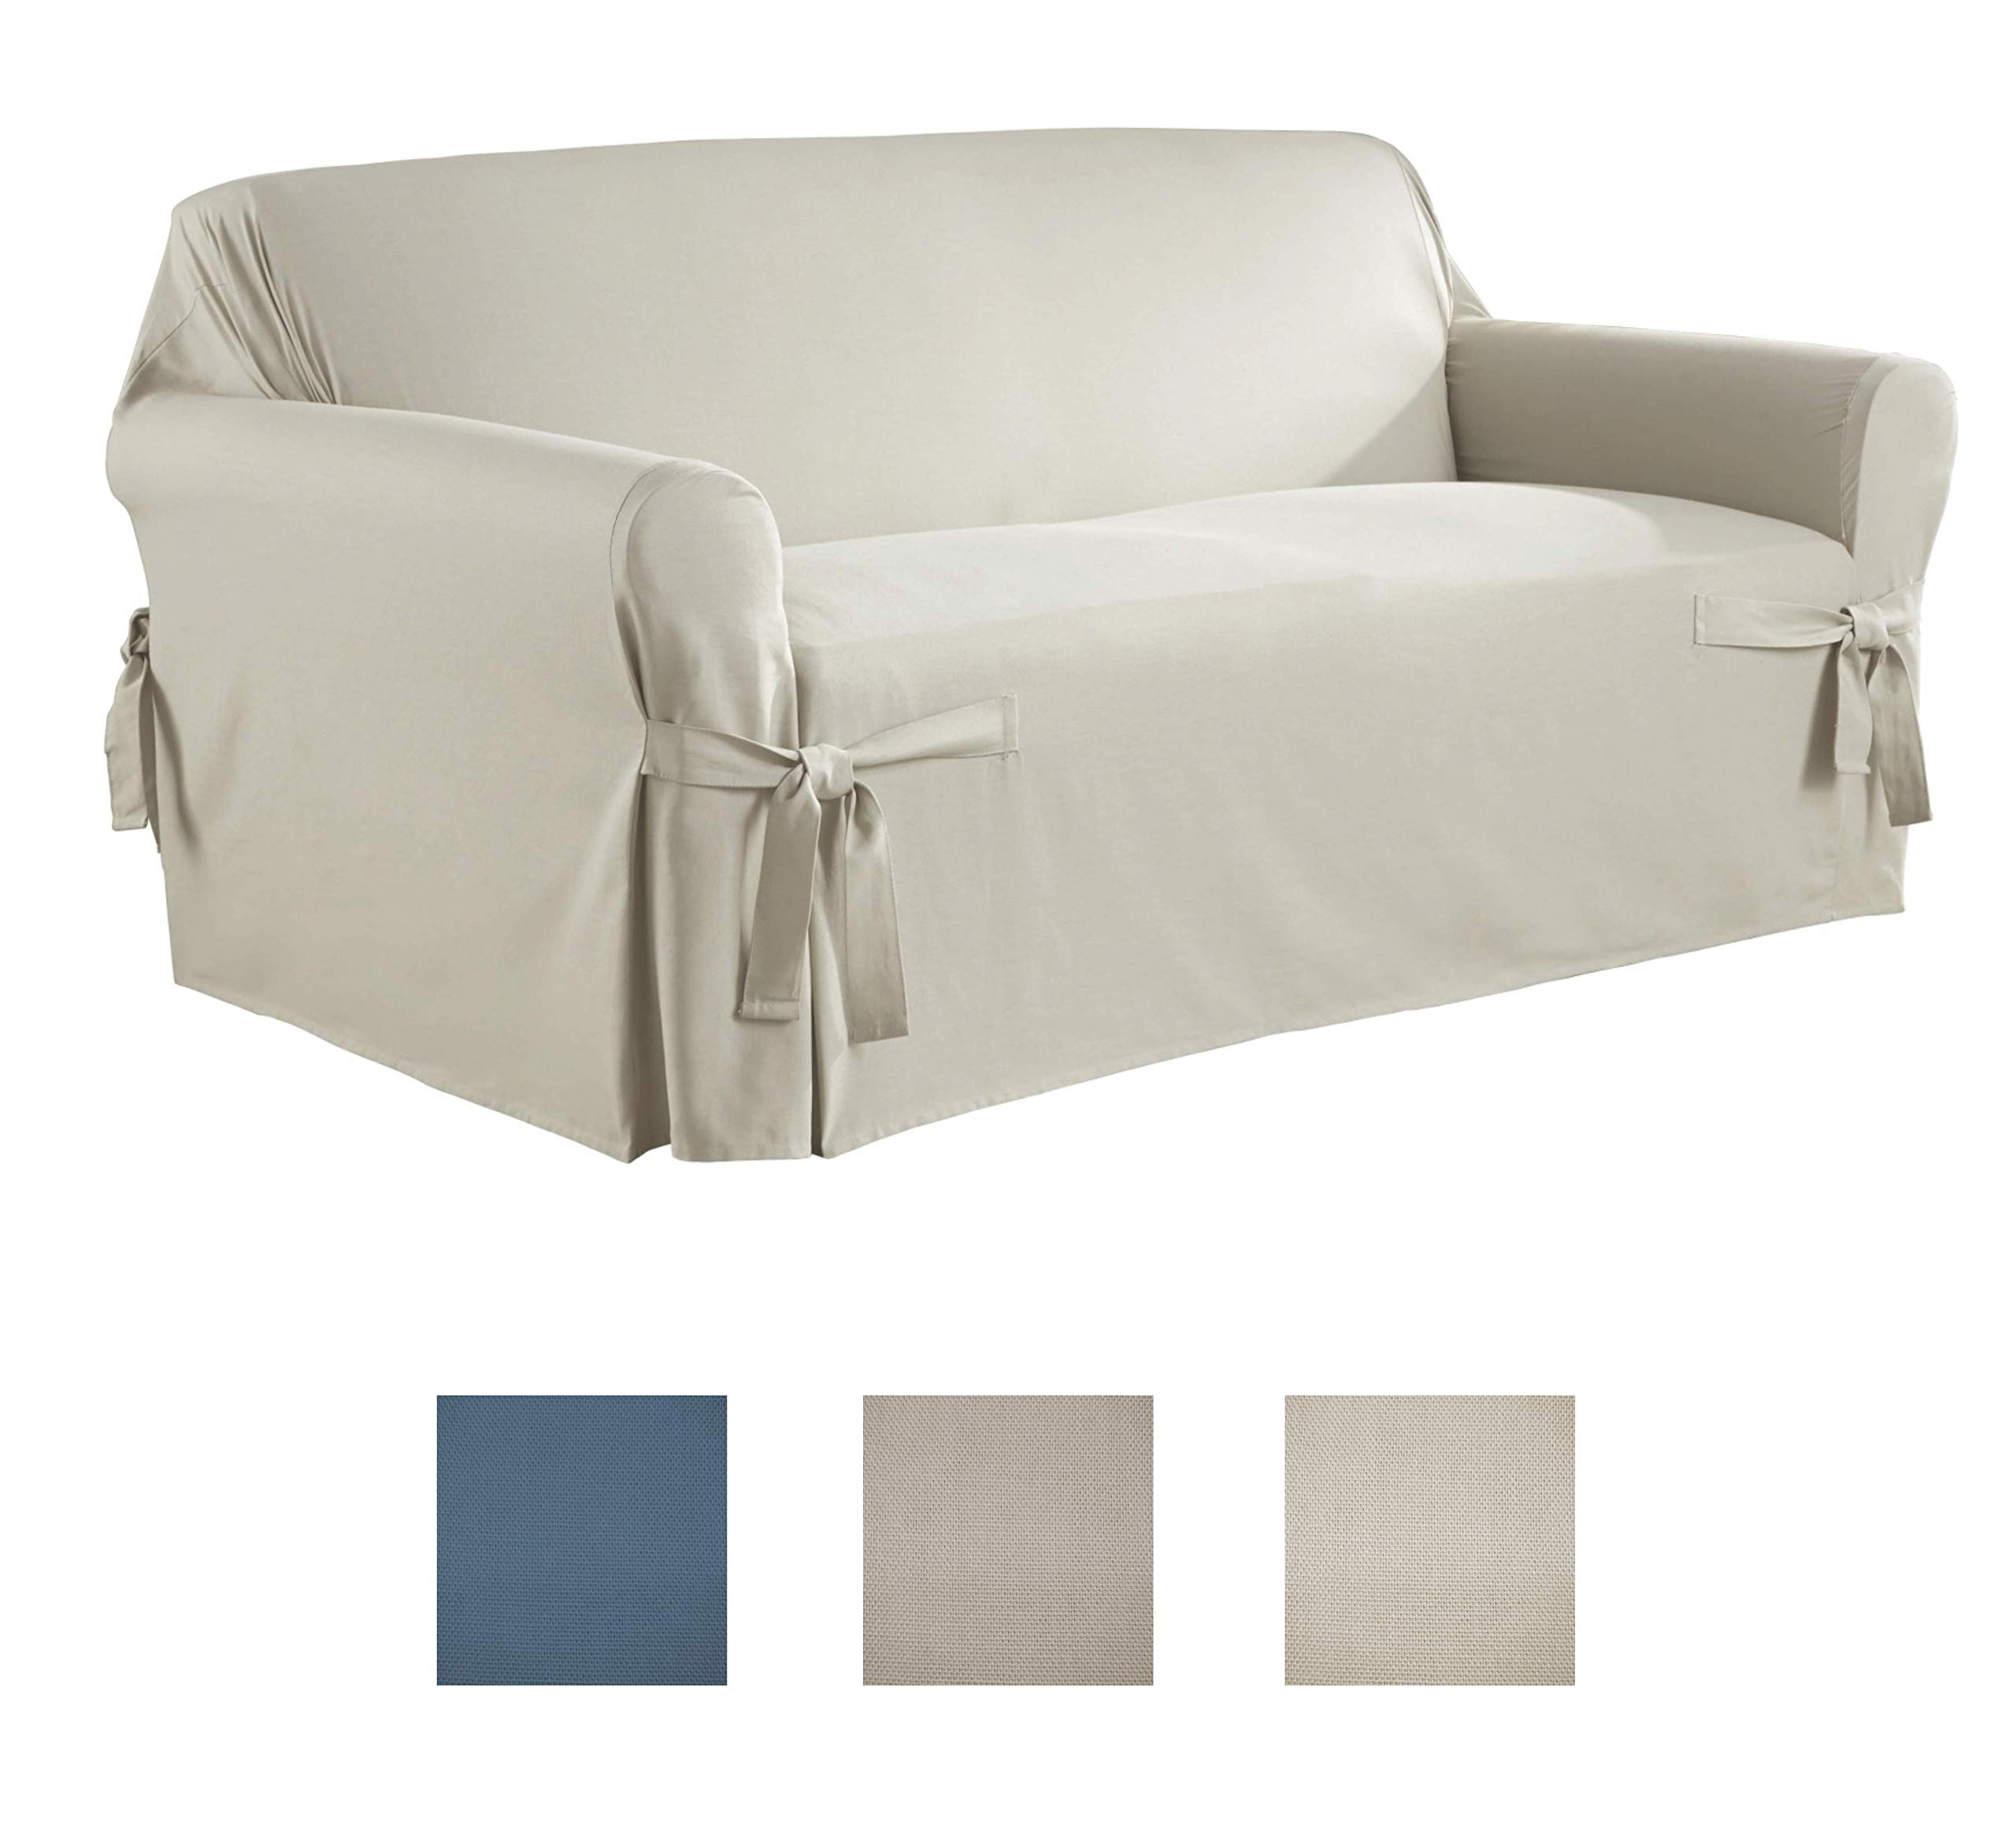 Serta | Relaxed Fit Durable Woven Linen Canvas Furniture Slipcover (Love Seat, Natural)